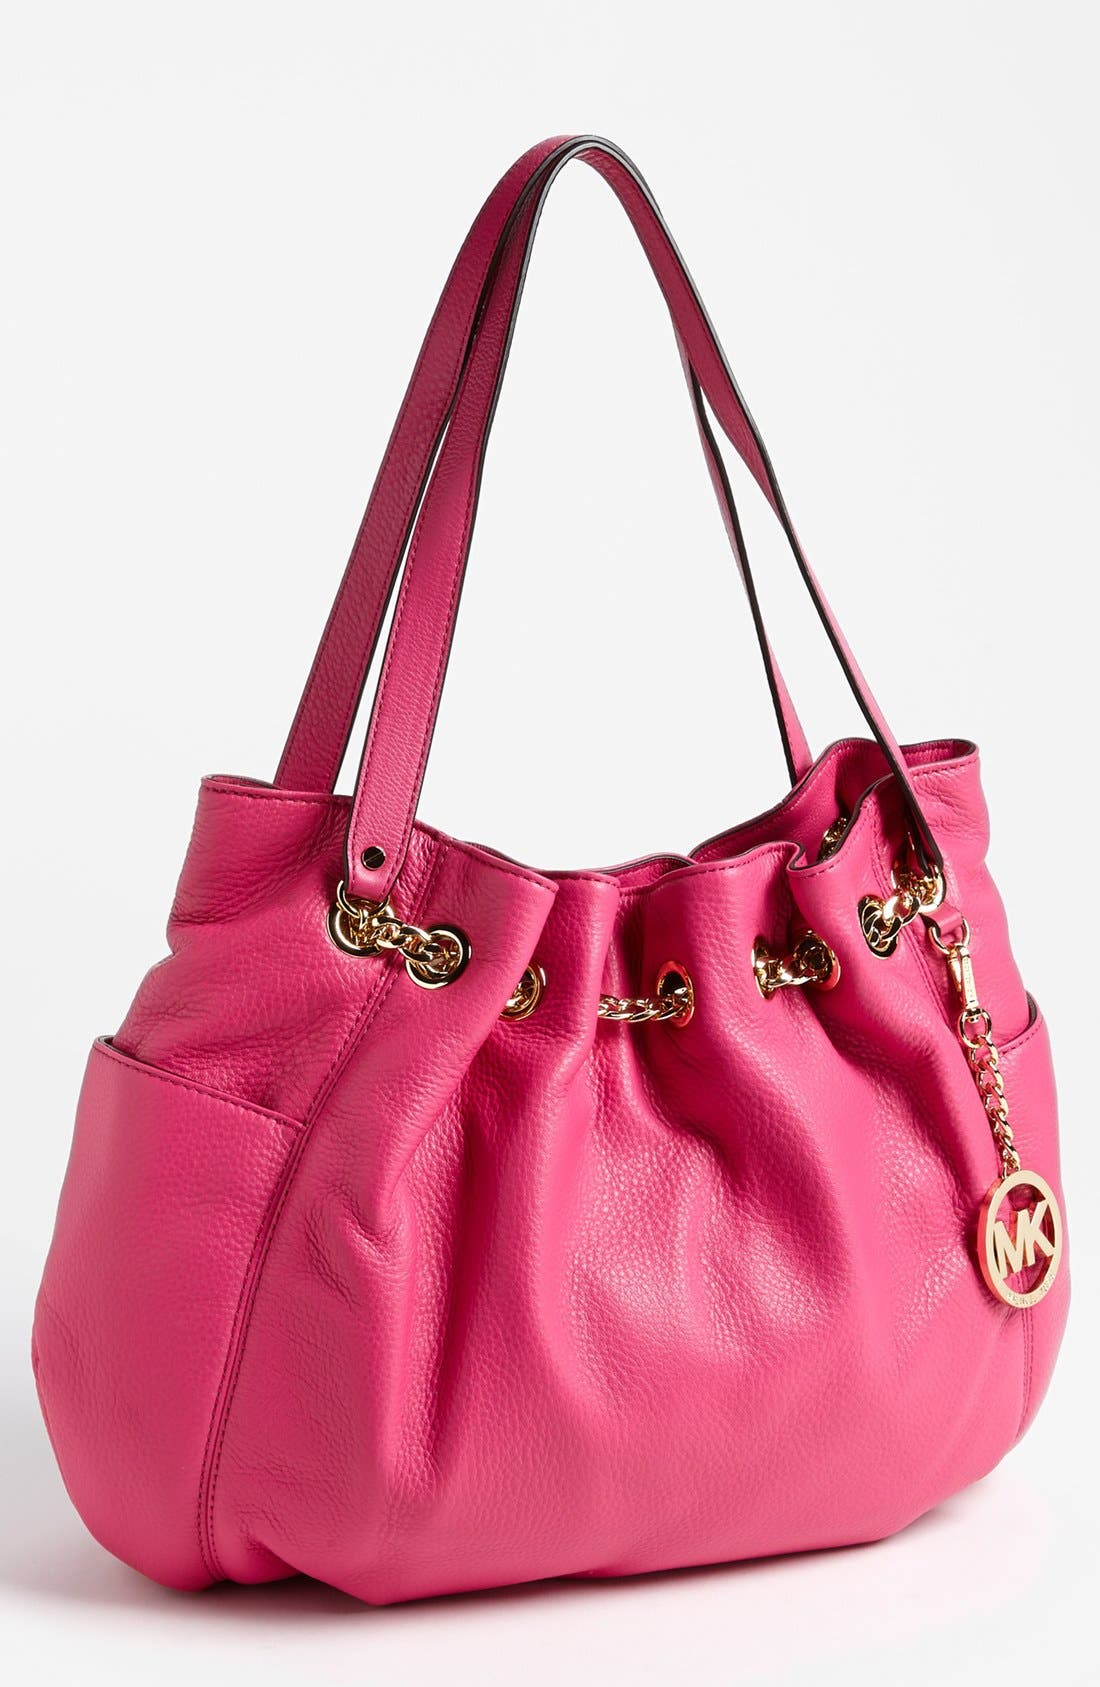 Alternate Image 1 Selected - MICHAEL Michael Kors 'Jet Set - Chain Ring' Tote (Special Purchase)